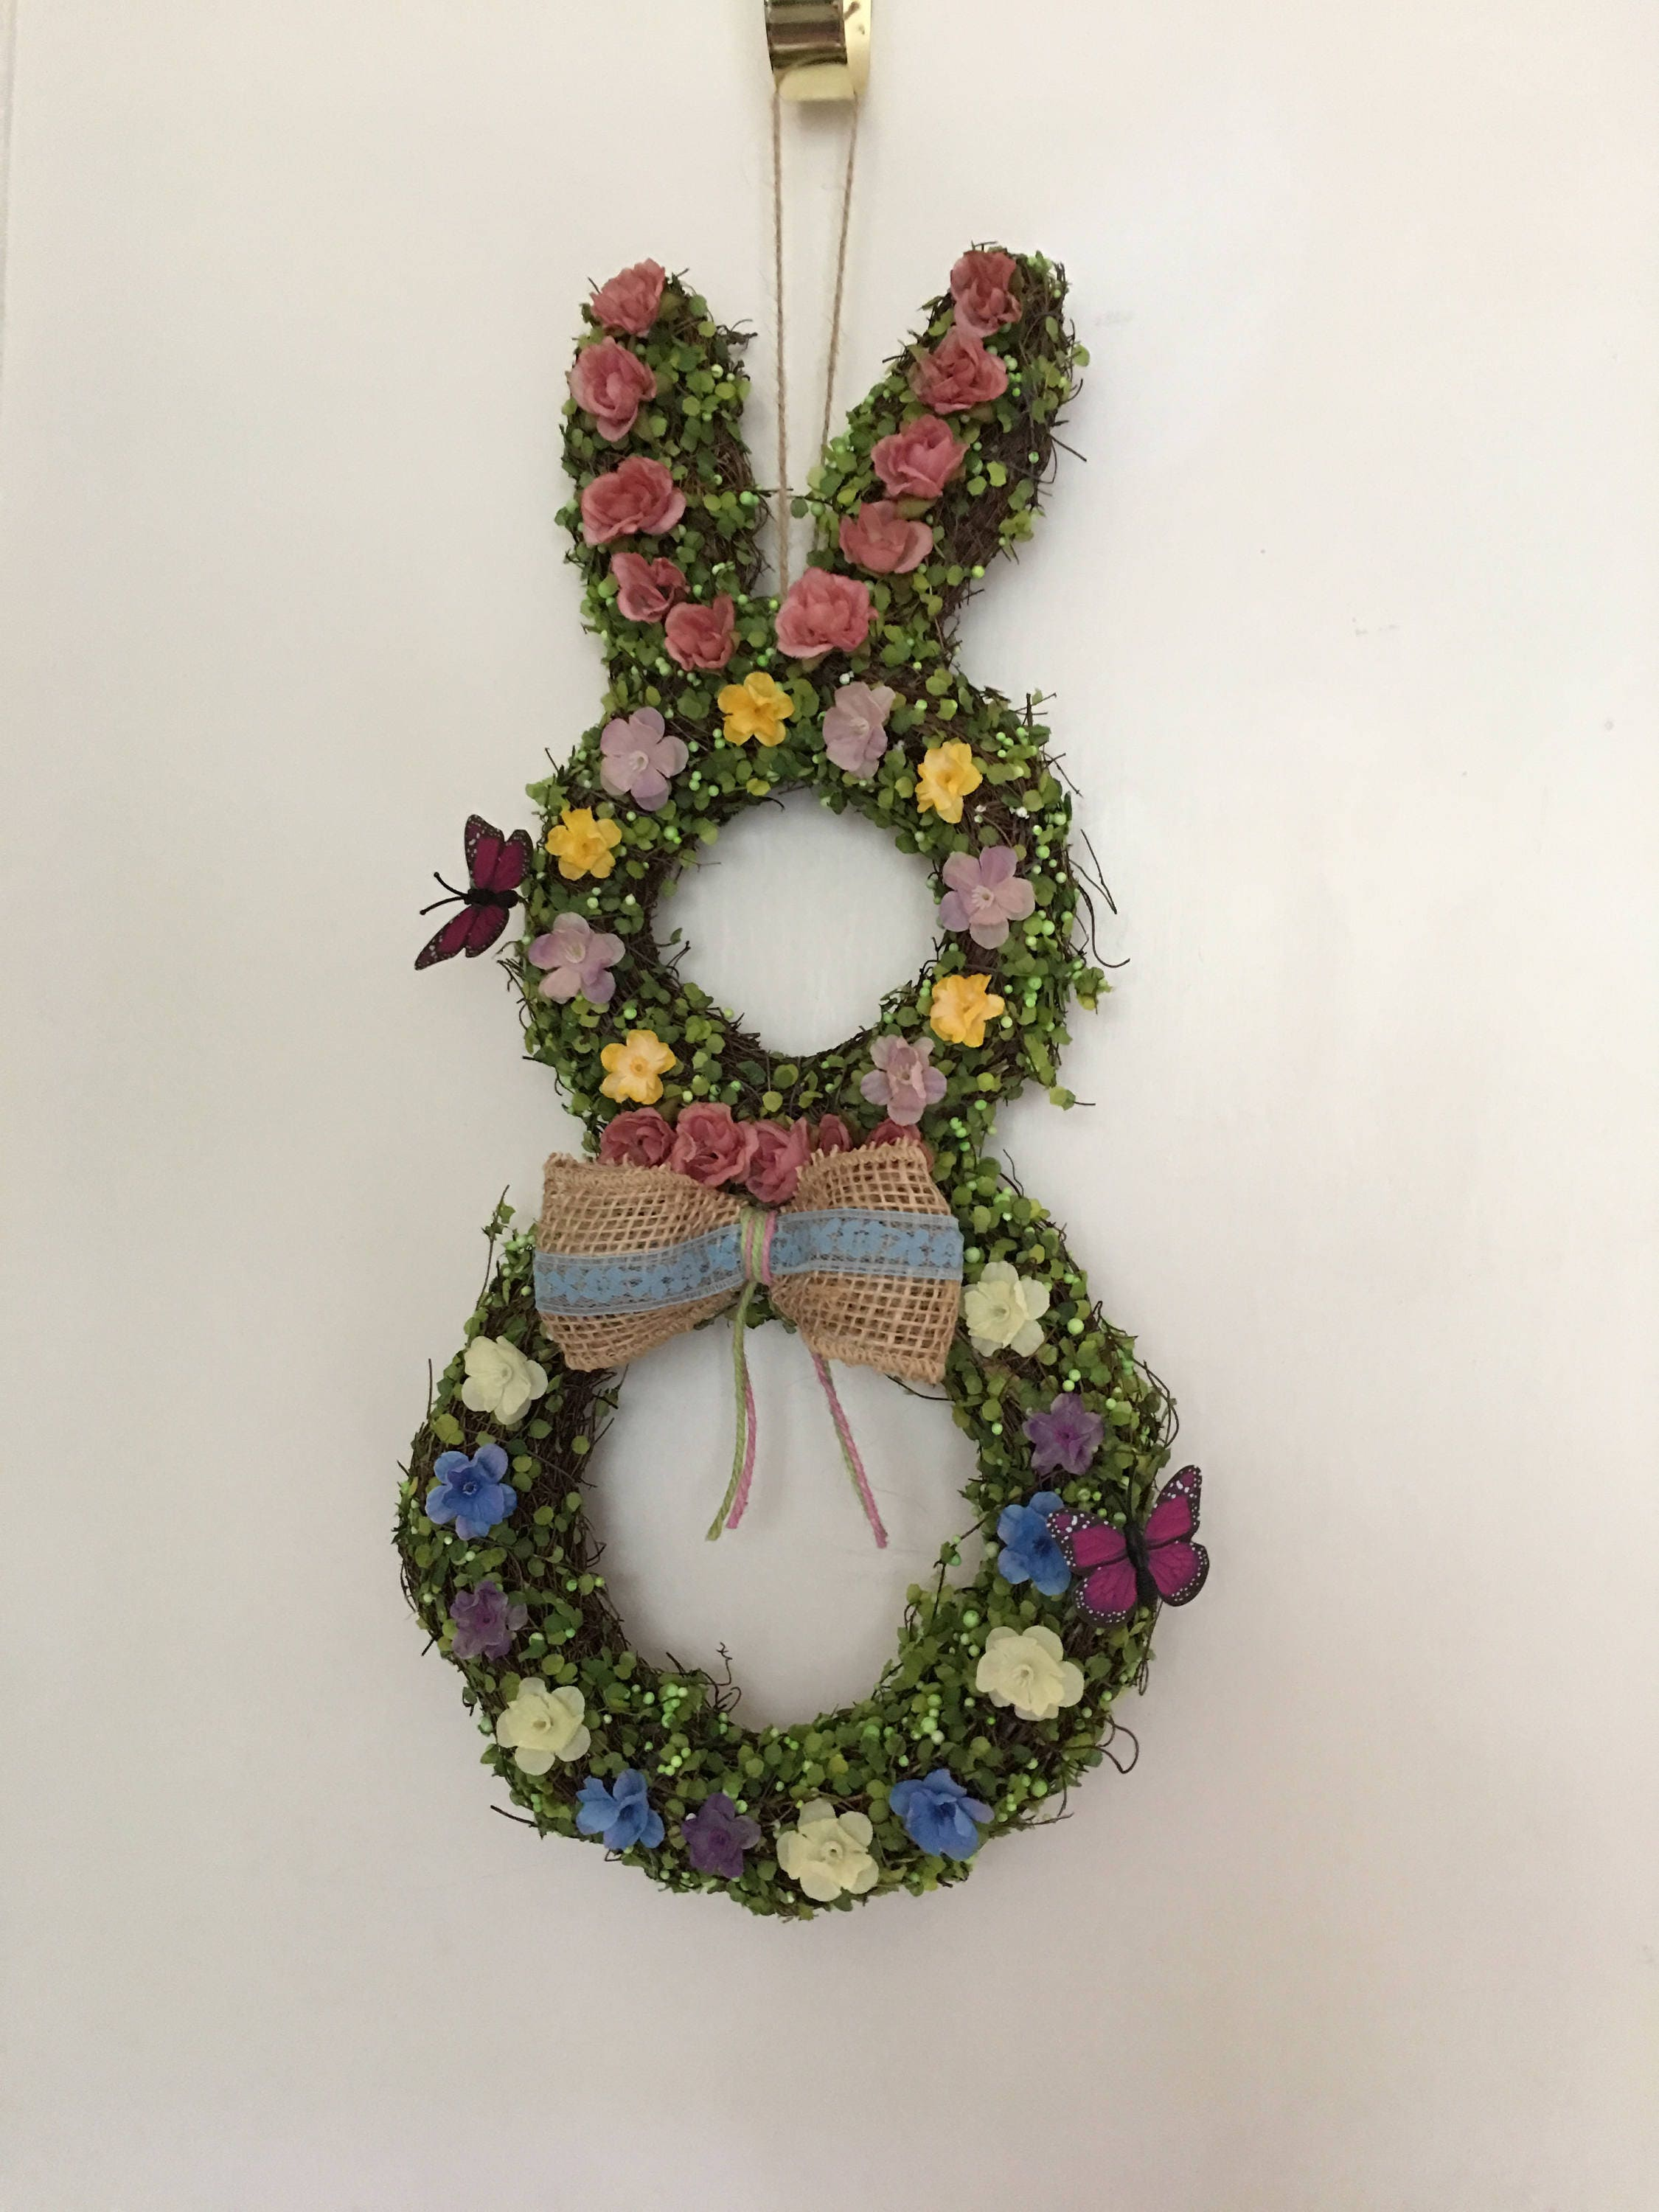 decorations and ideas ghk egg wreaths decoration entertaining celebrations decor arrangements crafts holidays spring beautiful flower wreath easter